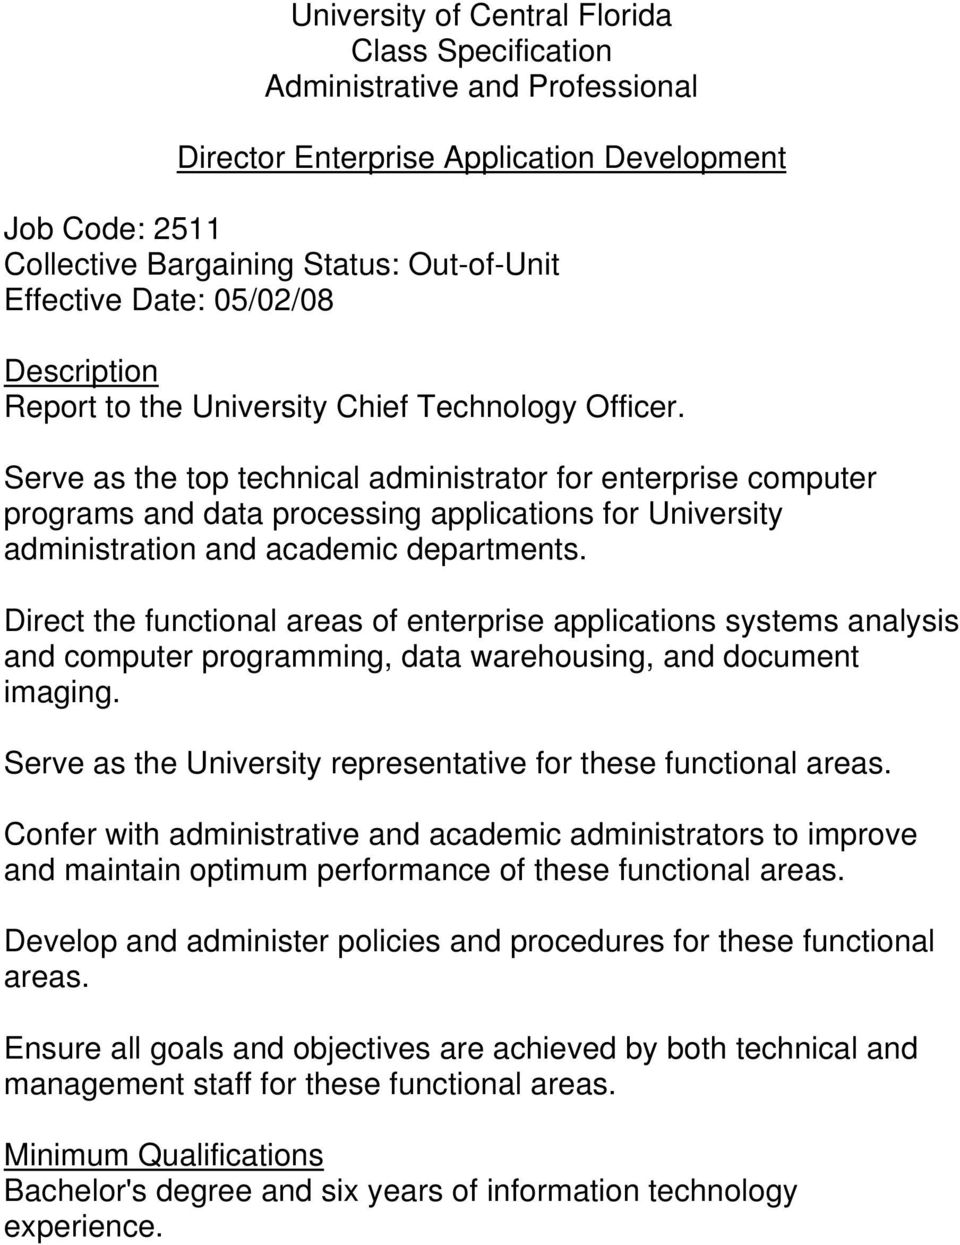 Direct the functional areas of enterprise applications systems analysis and computer programming, data warehousing, and document imaging.